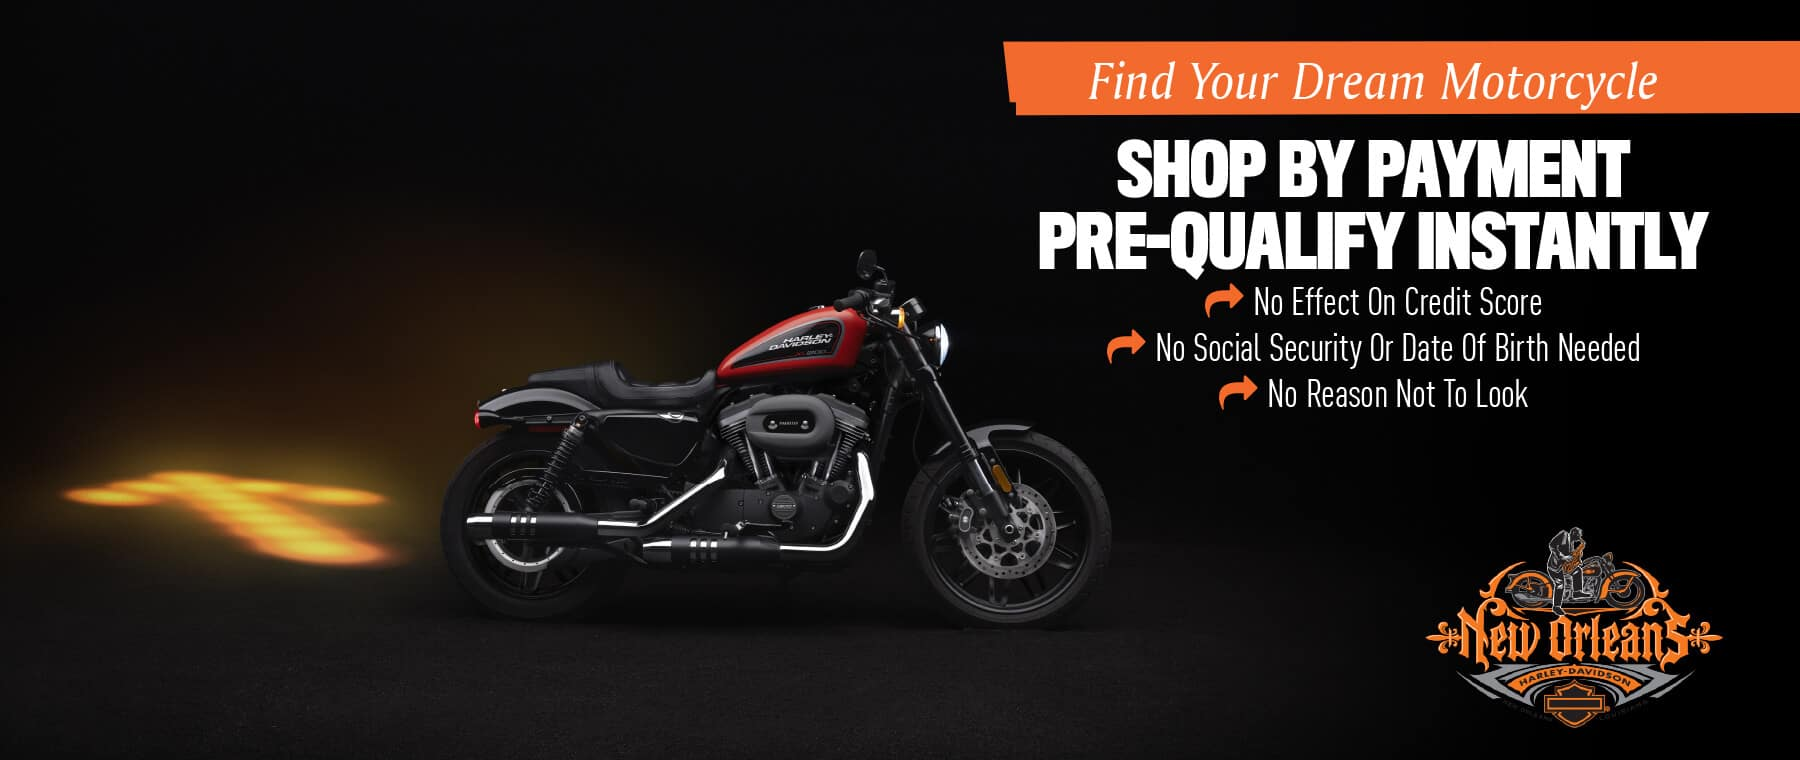 2020.07.21_New-Orleans-H-D-Shop-by-Payment_S47874ll-6